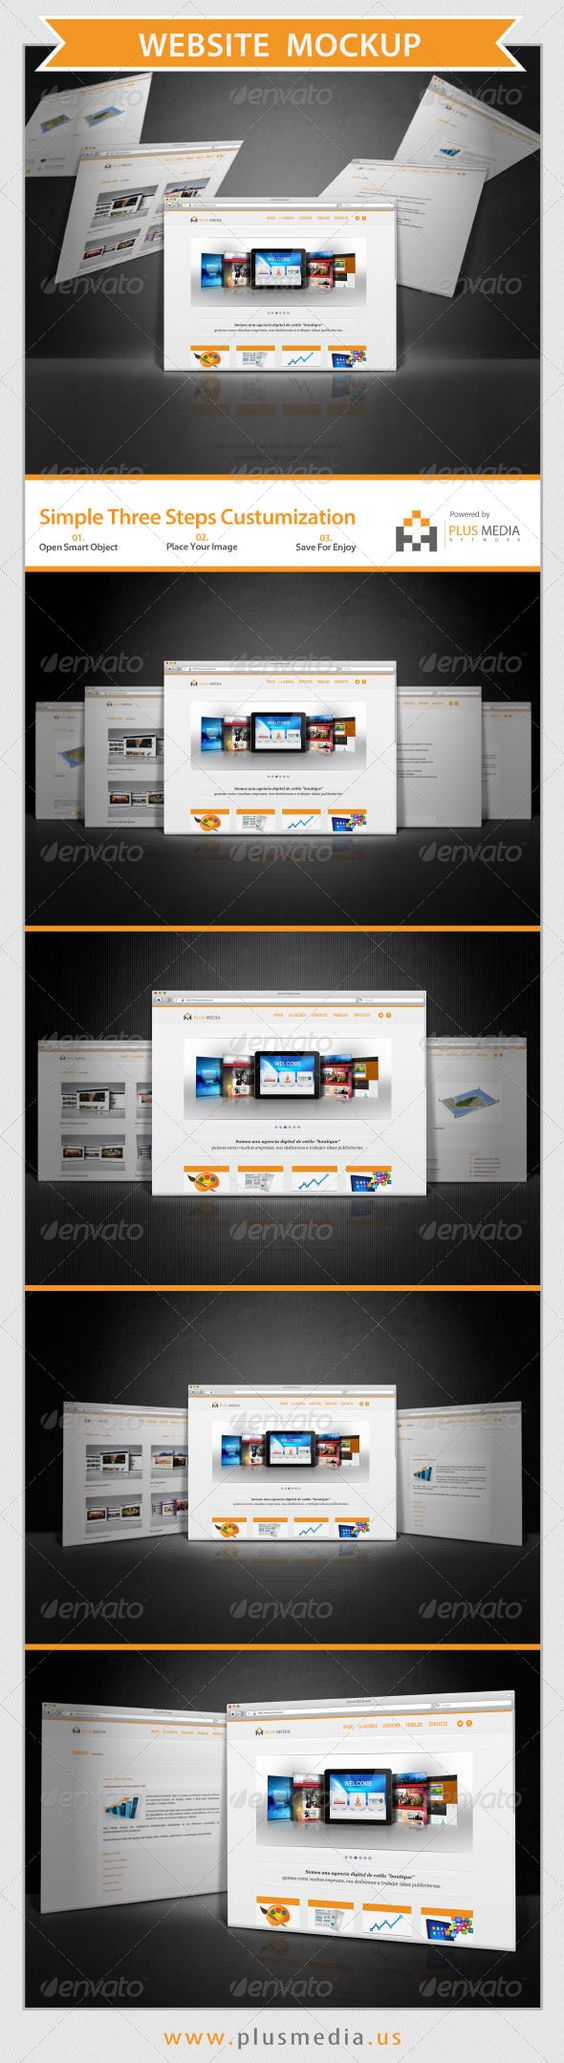 Inspiration for showing multi page websites